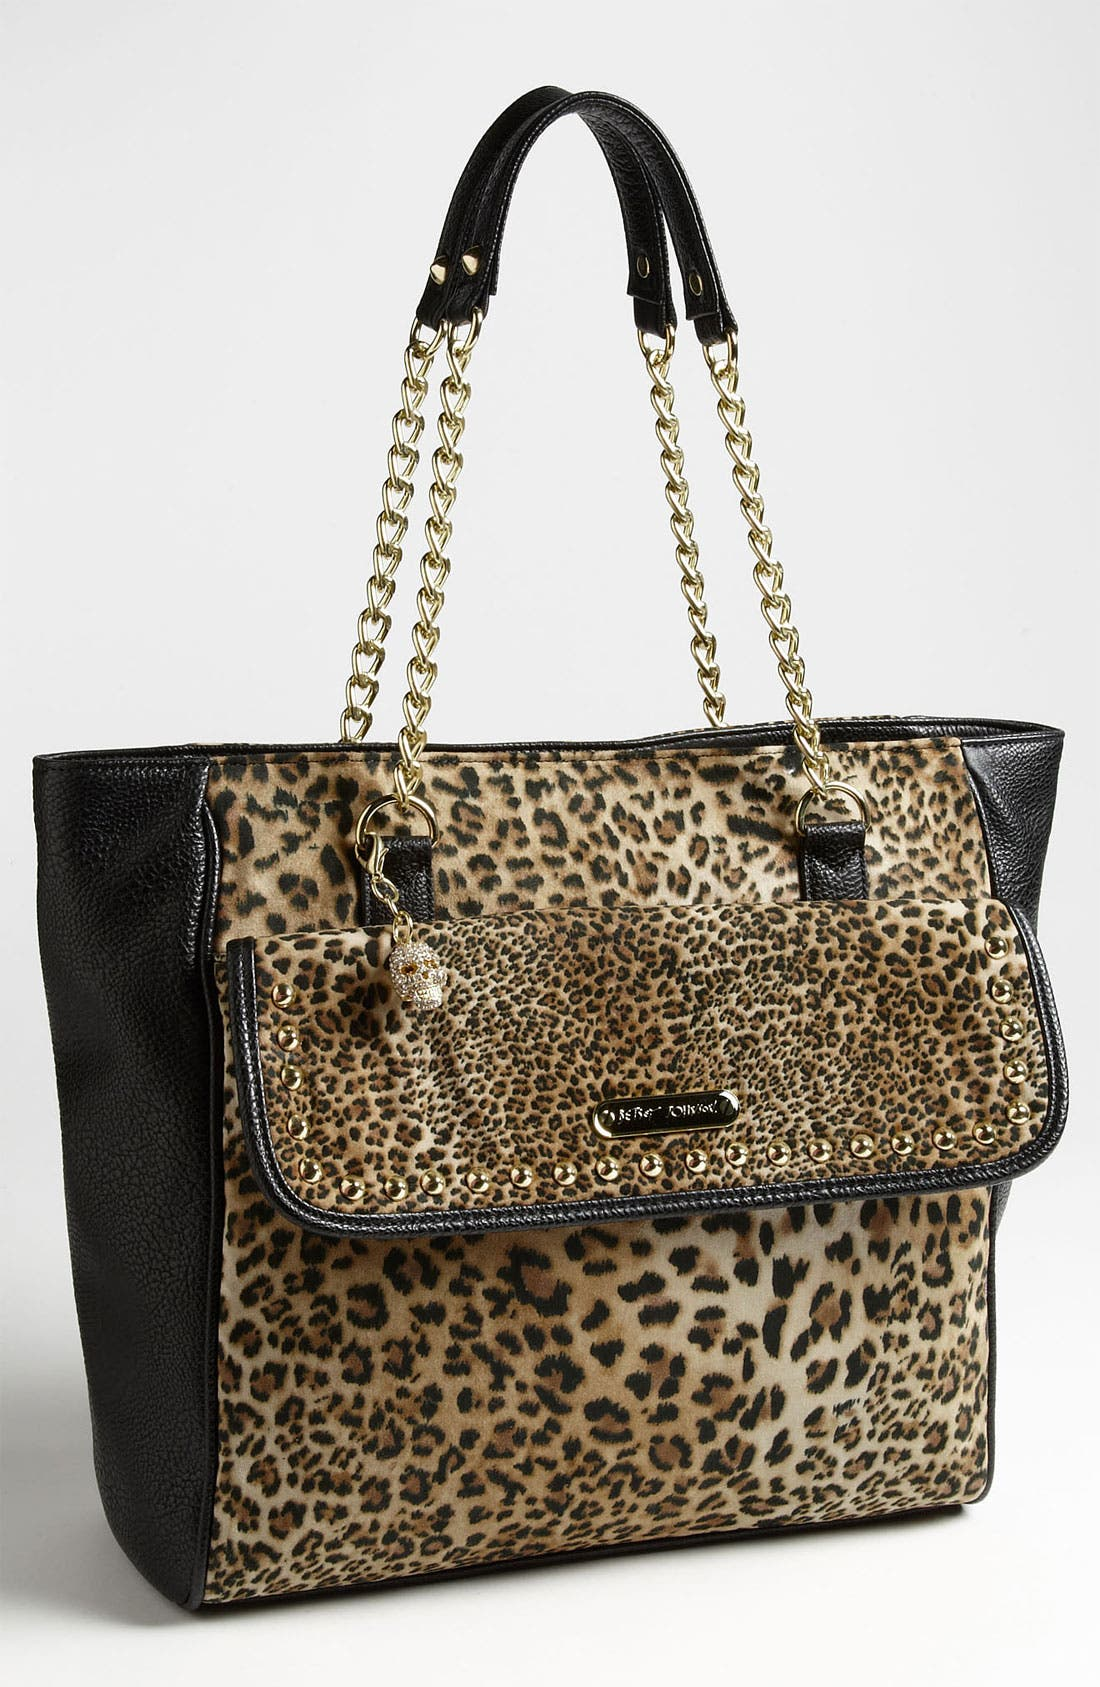 Alternate Image 1 Selected - Betsey Johnson Mixed Cheetah Print Tote